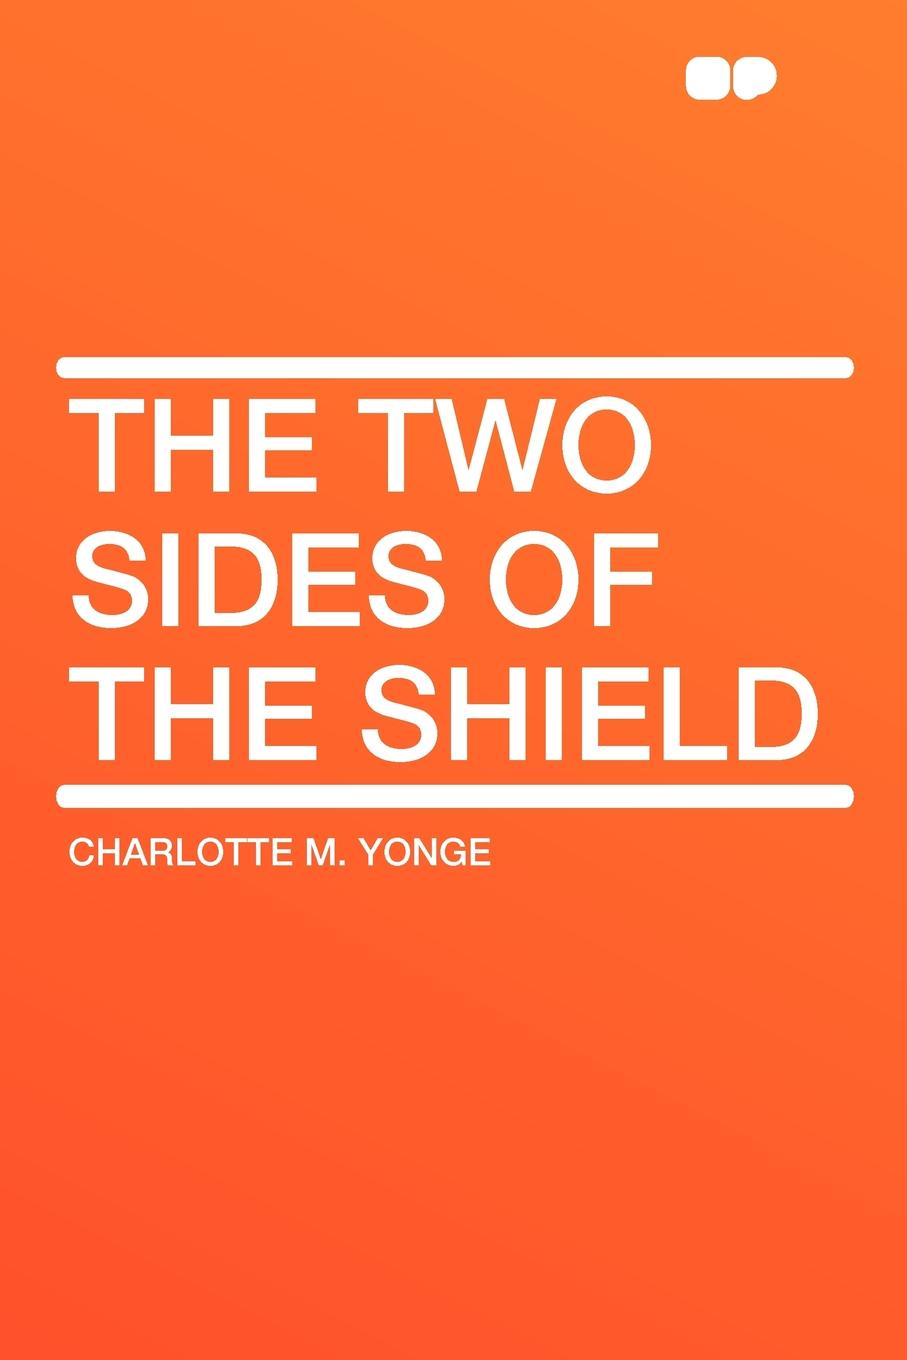 Charlotte M. Yonge The Two Sides of the Shield